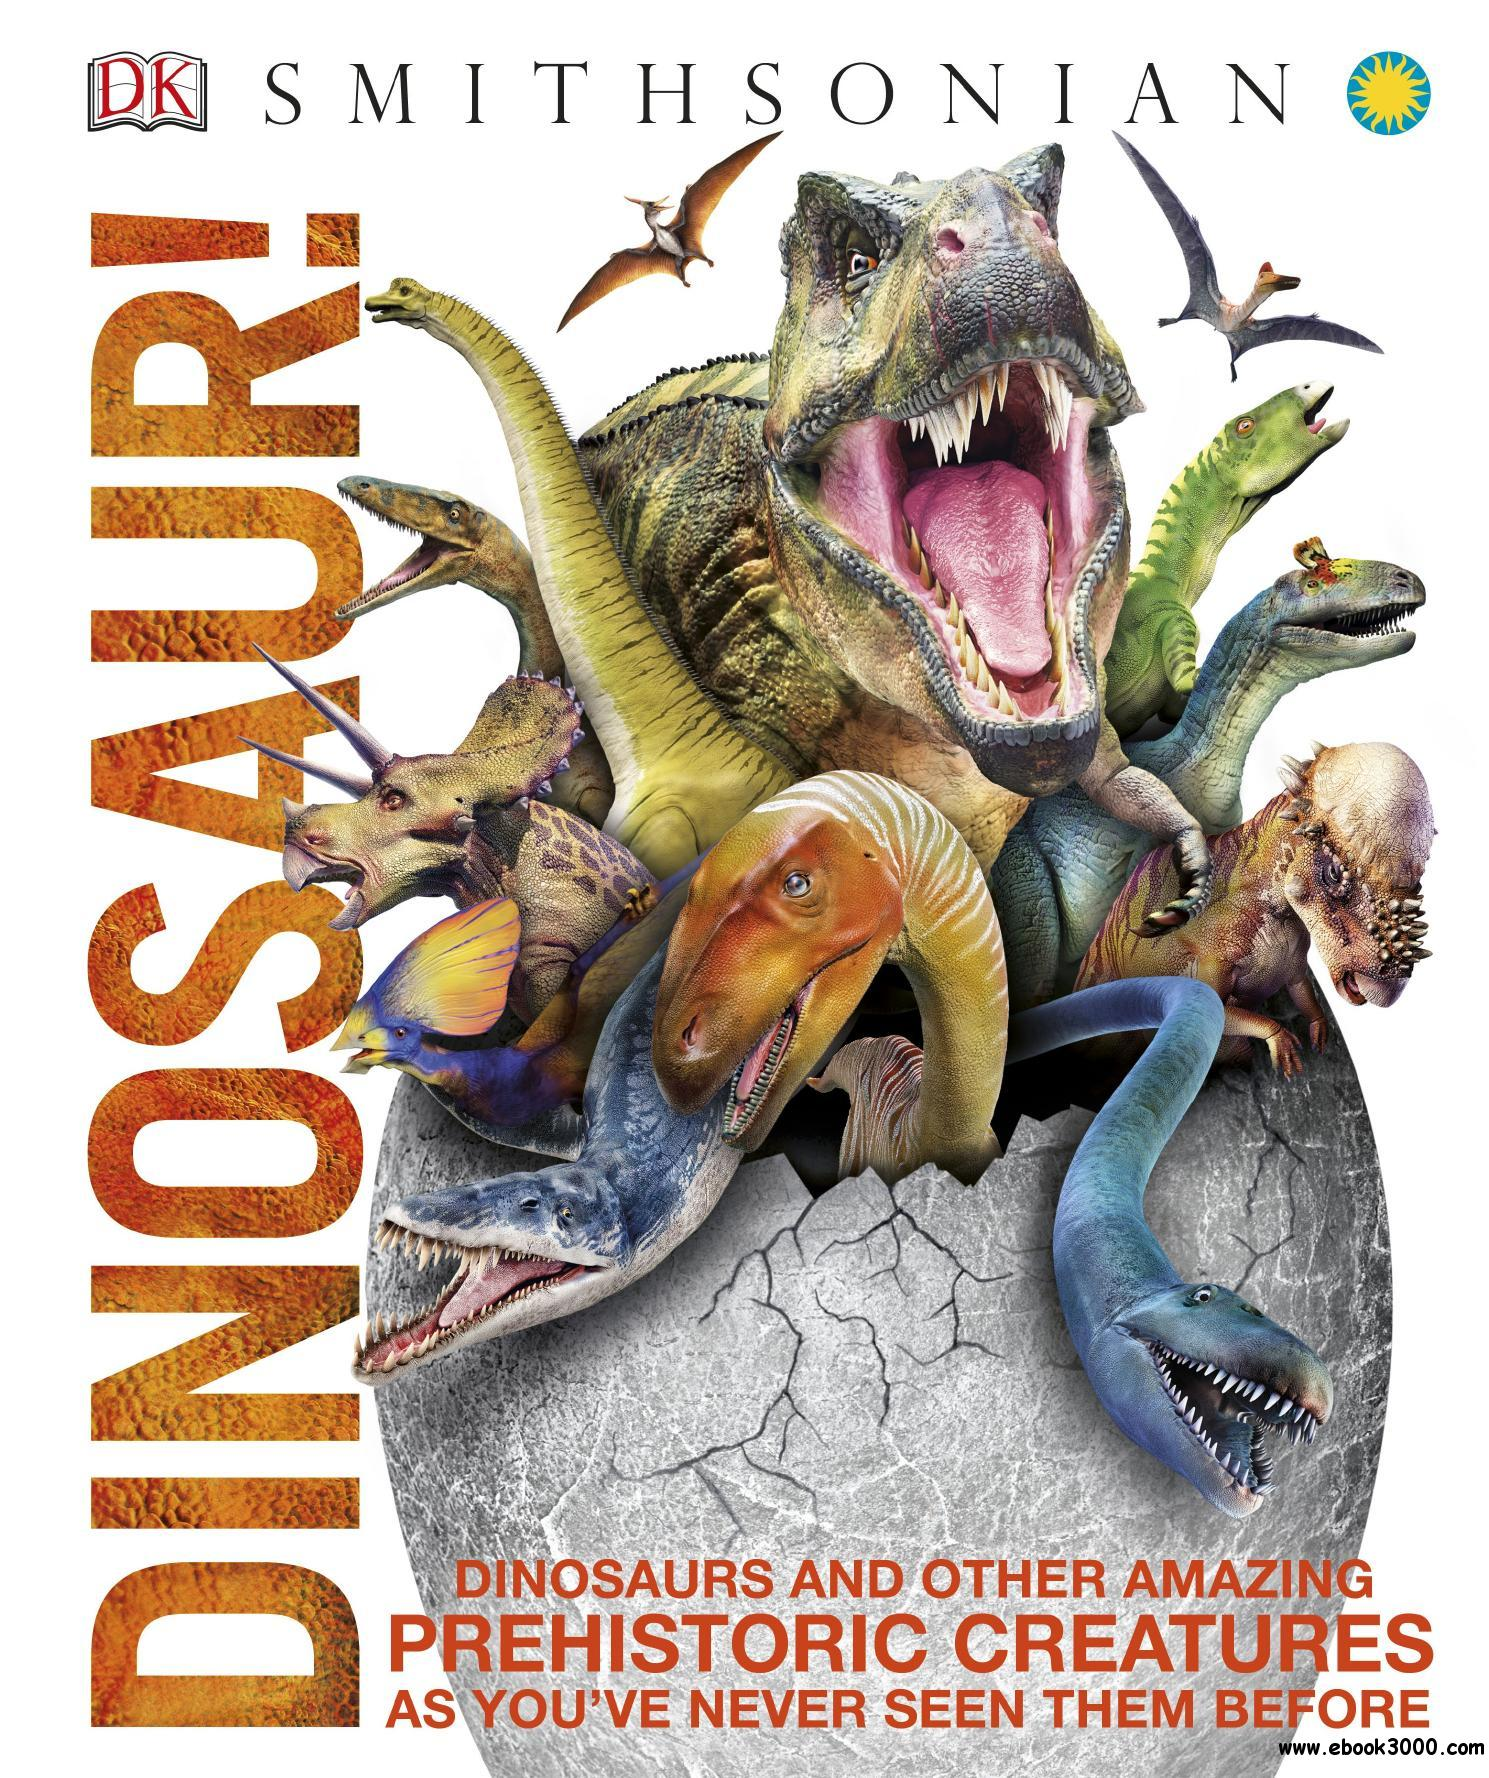 Dinosaur!: Over 60 Prehistoric Creatures as You've Never Seen Them Before (Knowledge Encyclopedias), 2nd Edition